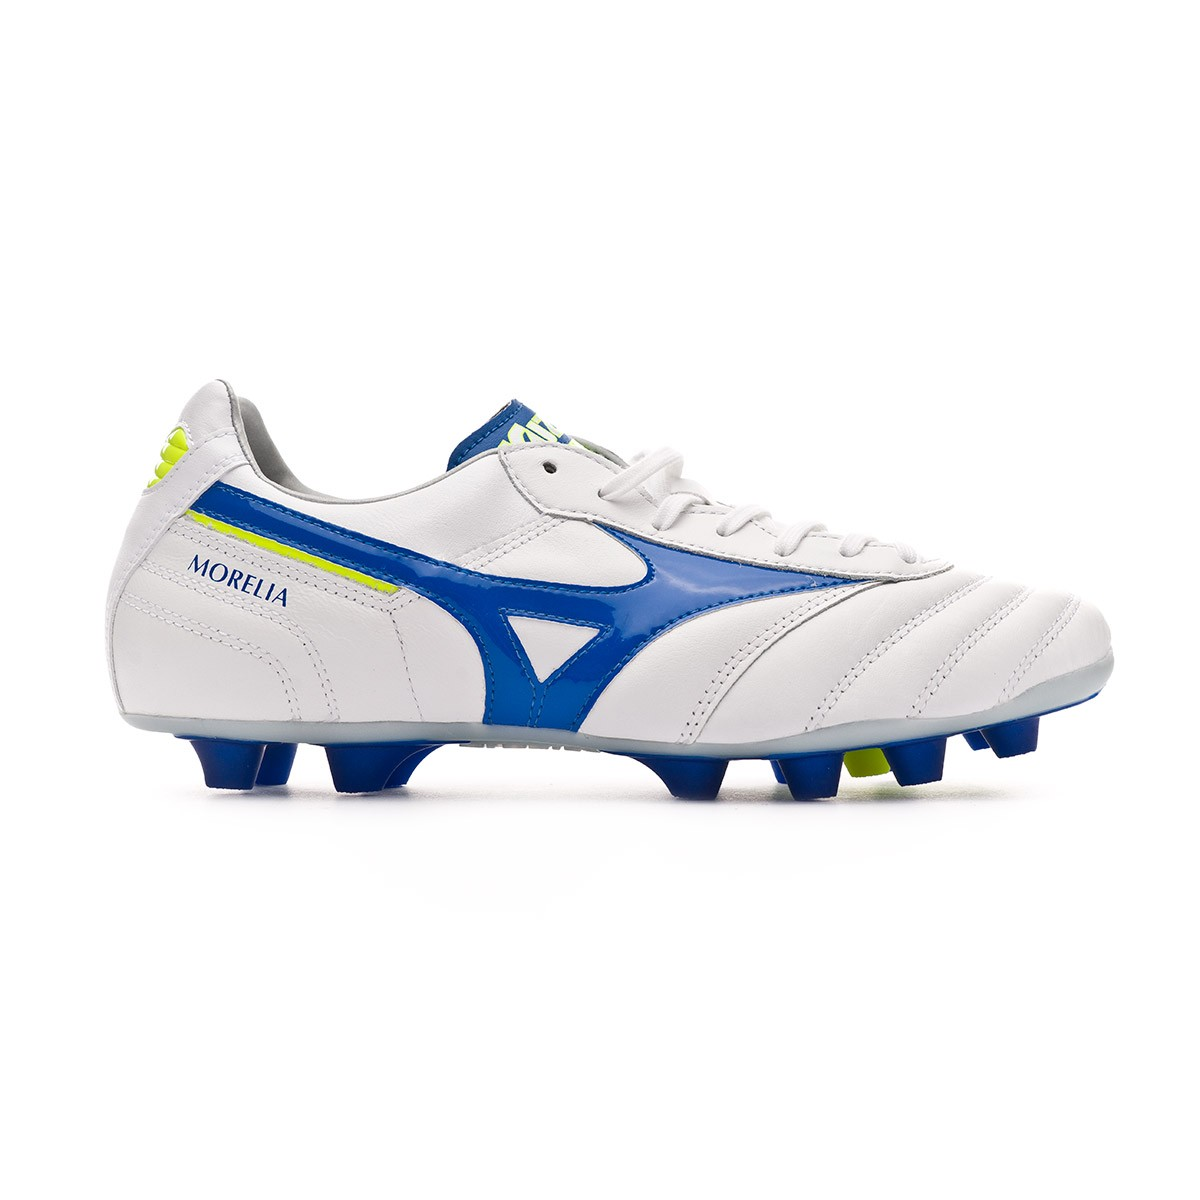 311445737663 Football Boots Mizuno Morelia II MD White-Wave cup blue-Safety yellow - Football  store Fútbol Emotion